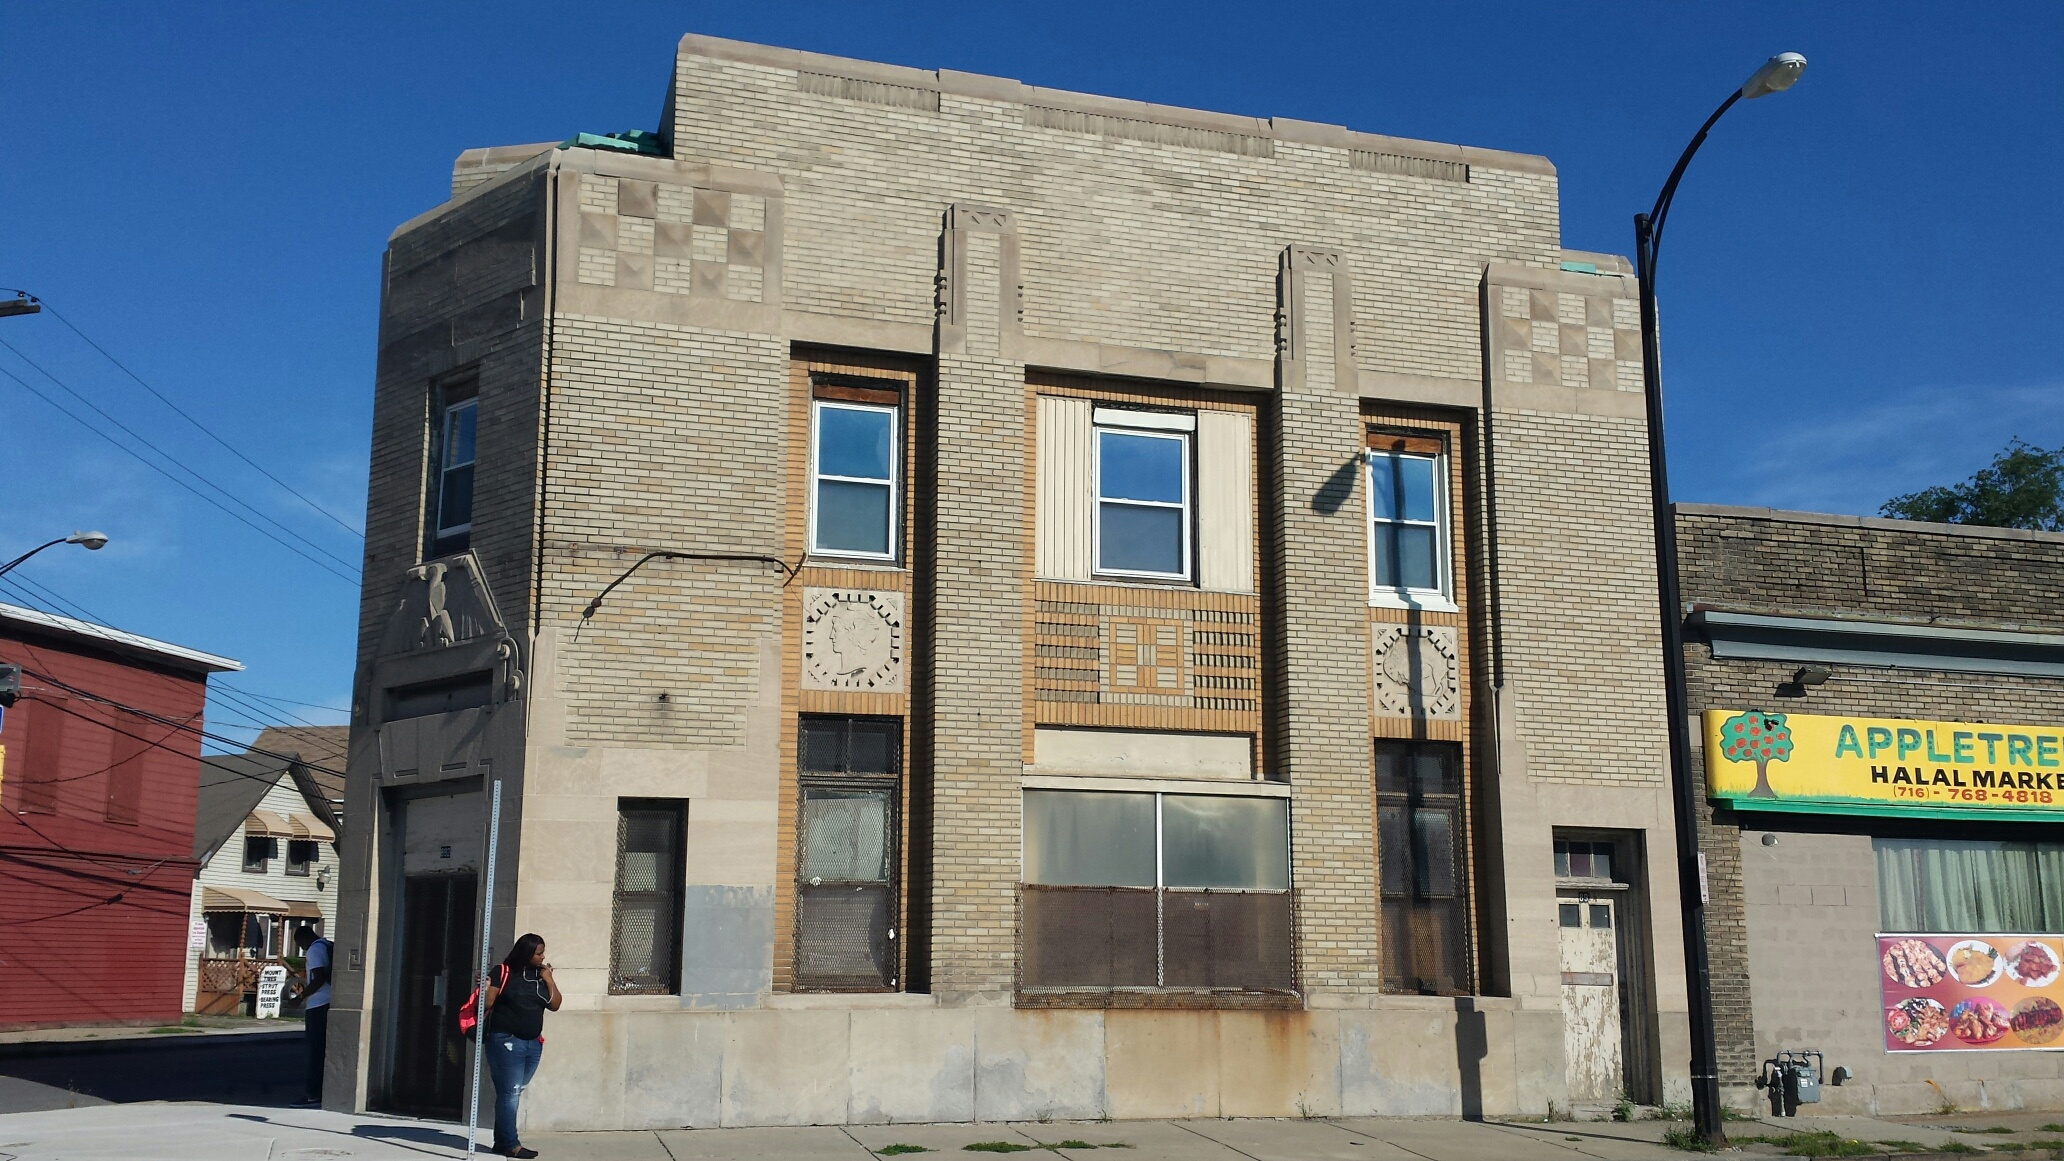 The former Liberty Bank branch building at 892 Genesee St., Buffalo, will be converted into apartments under a plan approved by the Buffalo Zoning Board of Appeals on Sept.21, 2016. The building, owned by Temple of Christ Church, features Art Deco ornamentation.